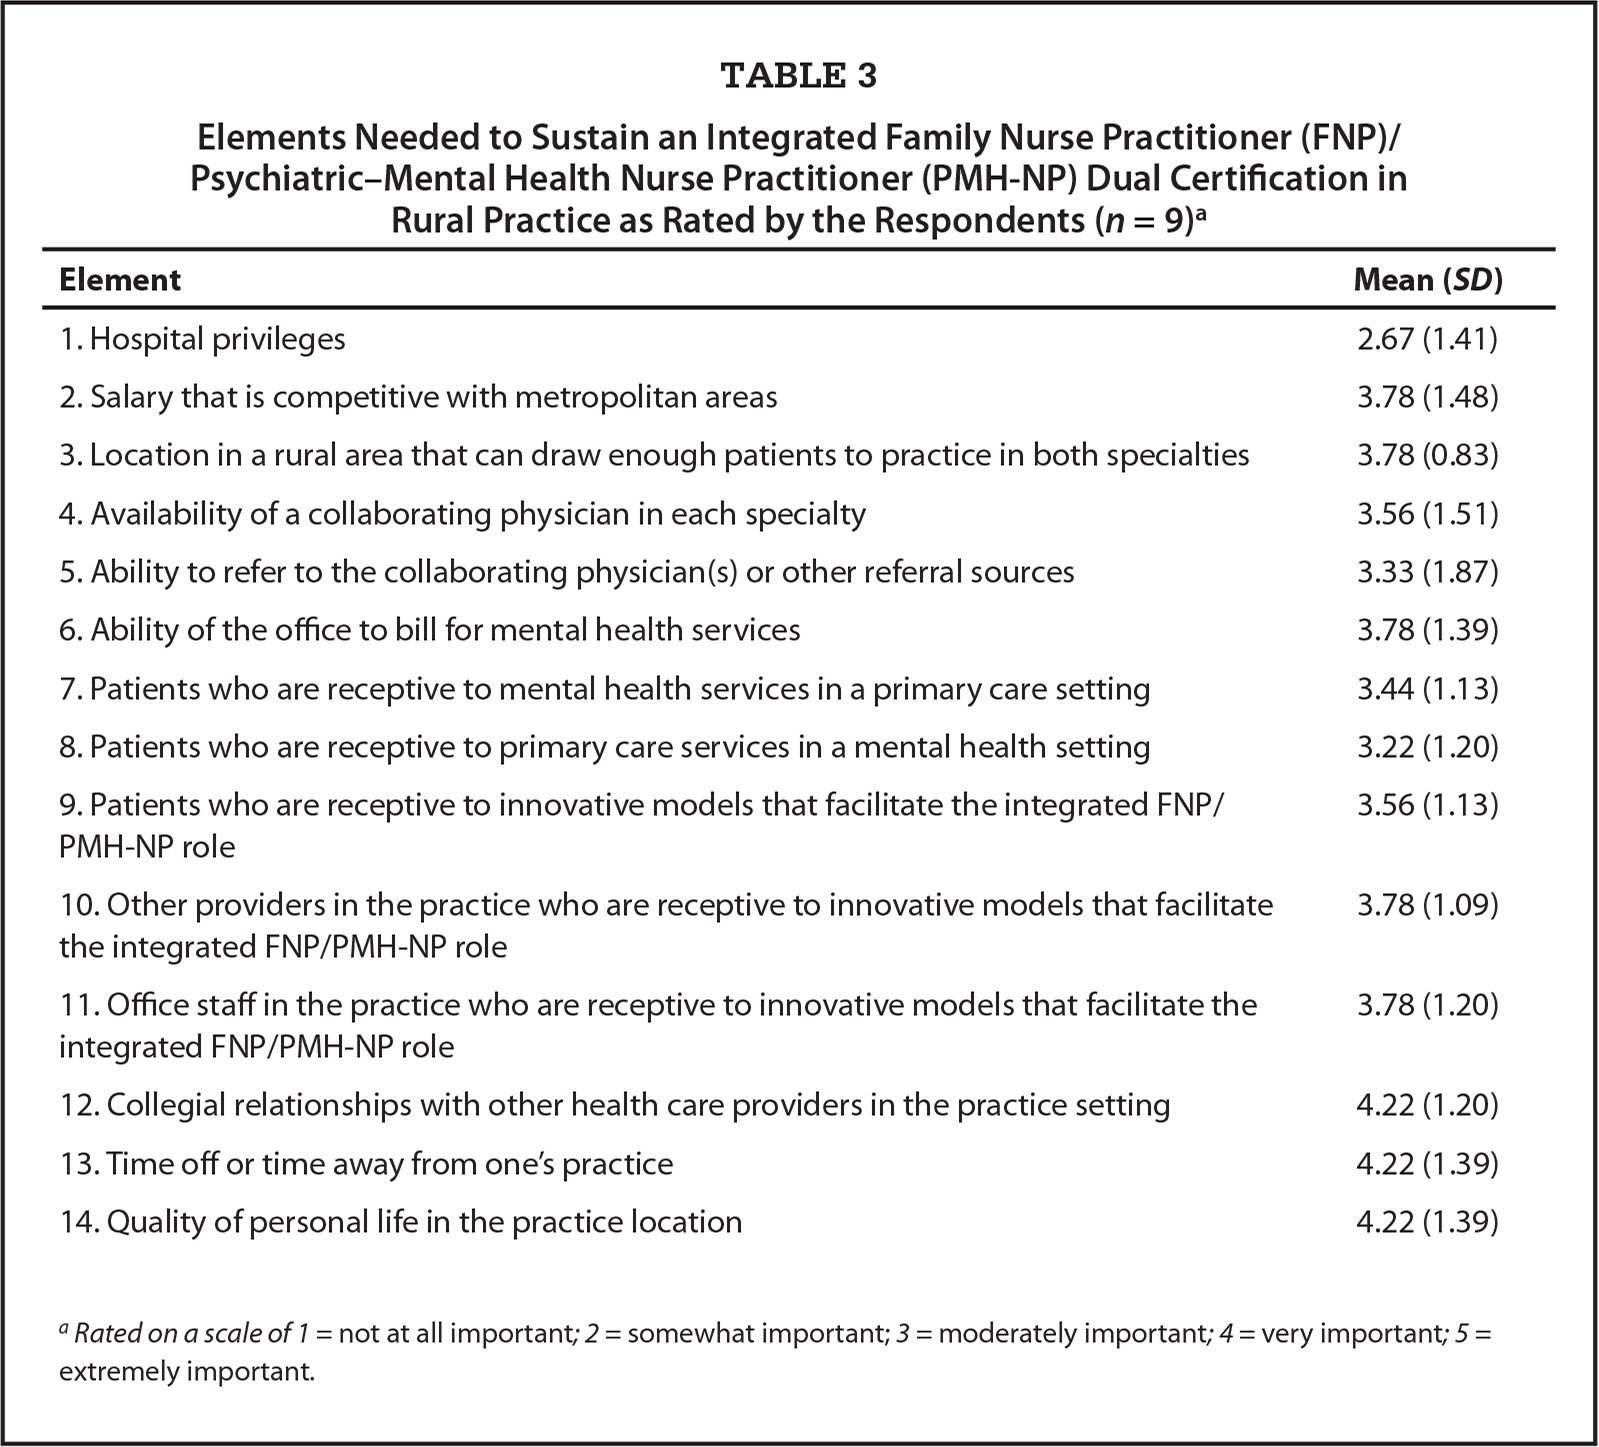 Elements Needed to Sustain an Integrated Family Nurse Practitioner (FNP)/Psychiatric–Mental Health Nurse Practitioner (PMH-NP) Dual Certification in Rural Practice as Rated by the Respondents (n = 9)a